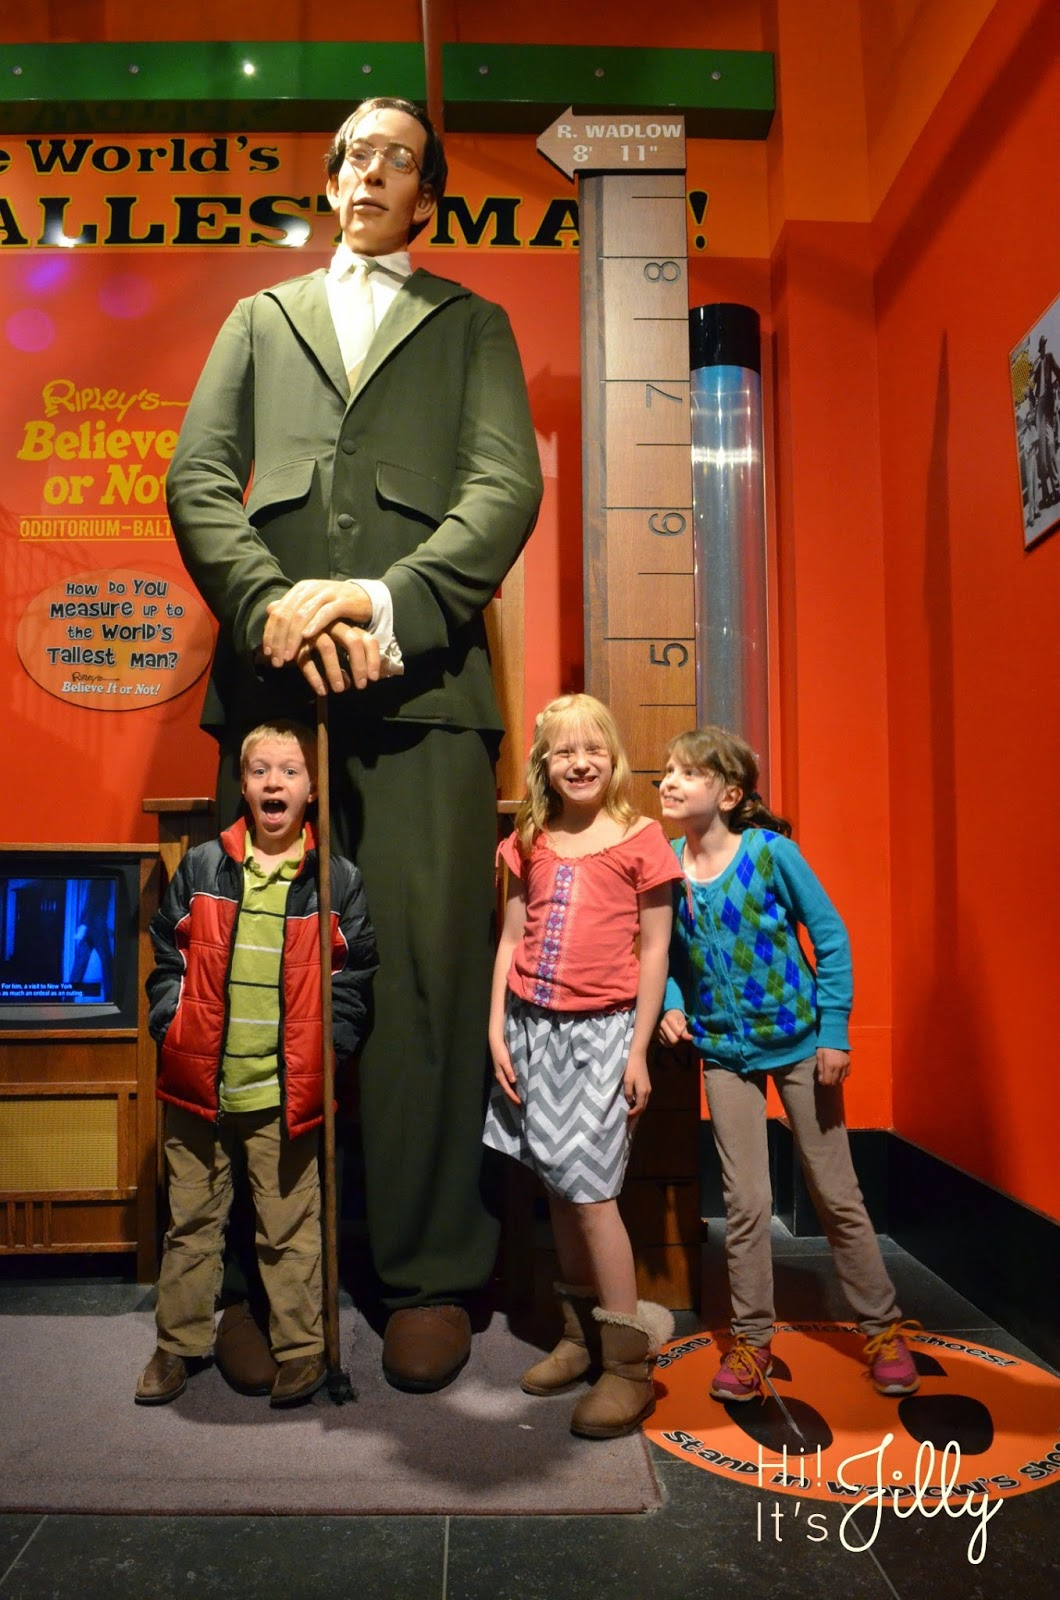 Ripley's Believe It Or Not in Baltimore. Lots of fun for the whole family! #ripleys #baltimore #museum #travel